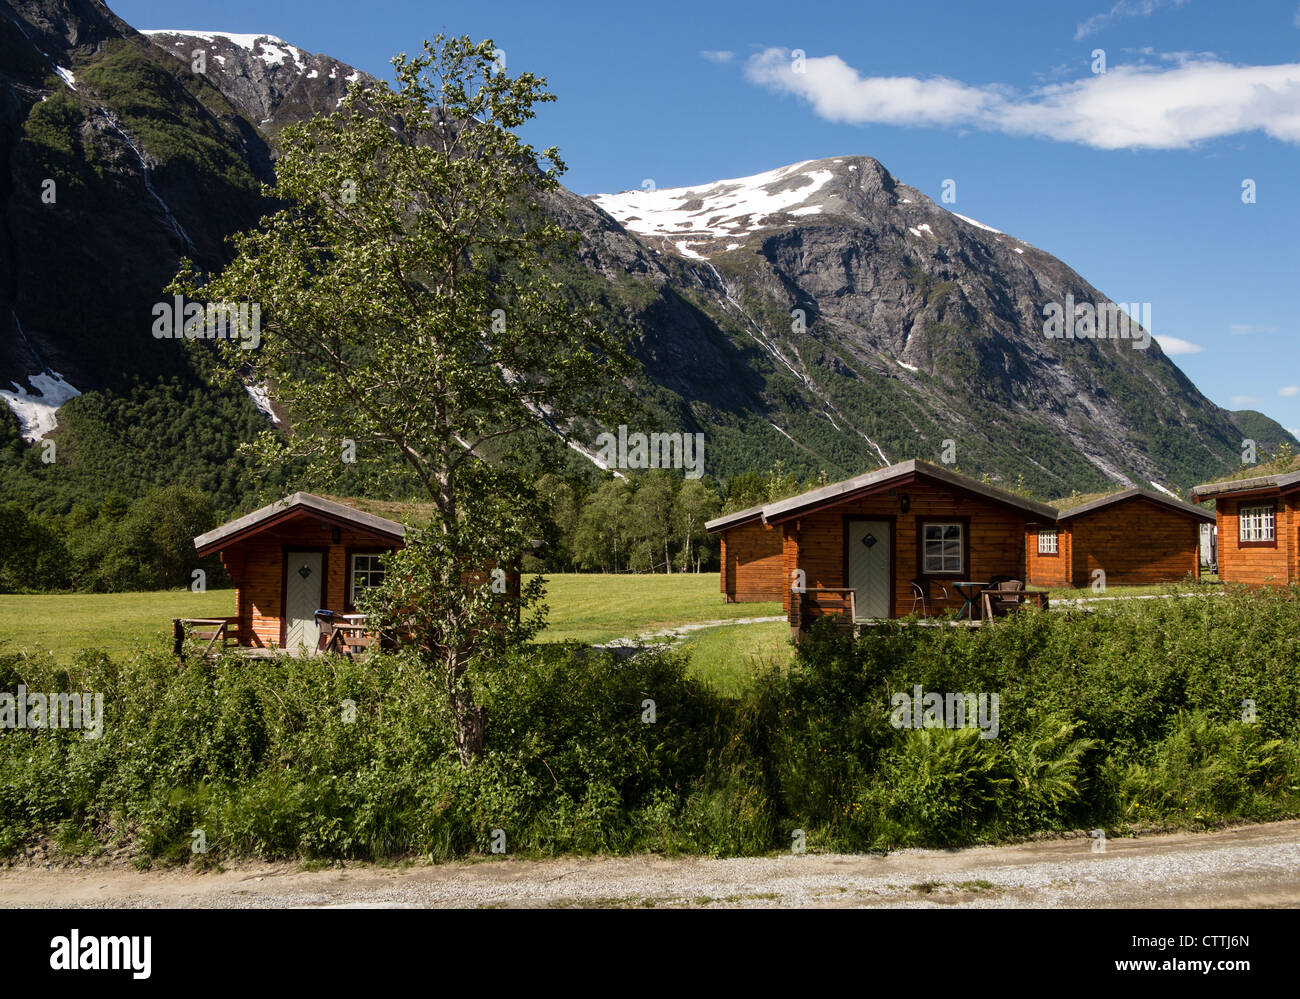 Hoiday cabins with turf roofs at Trollstigen Romsdal Norway - Stock Image